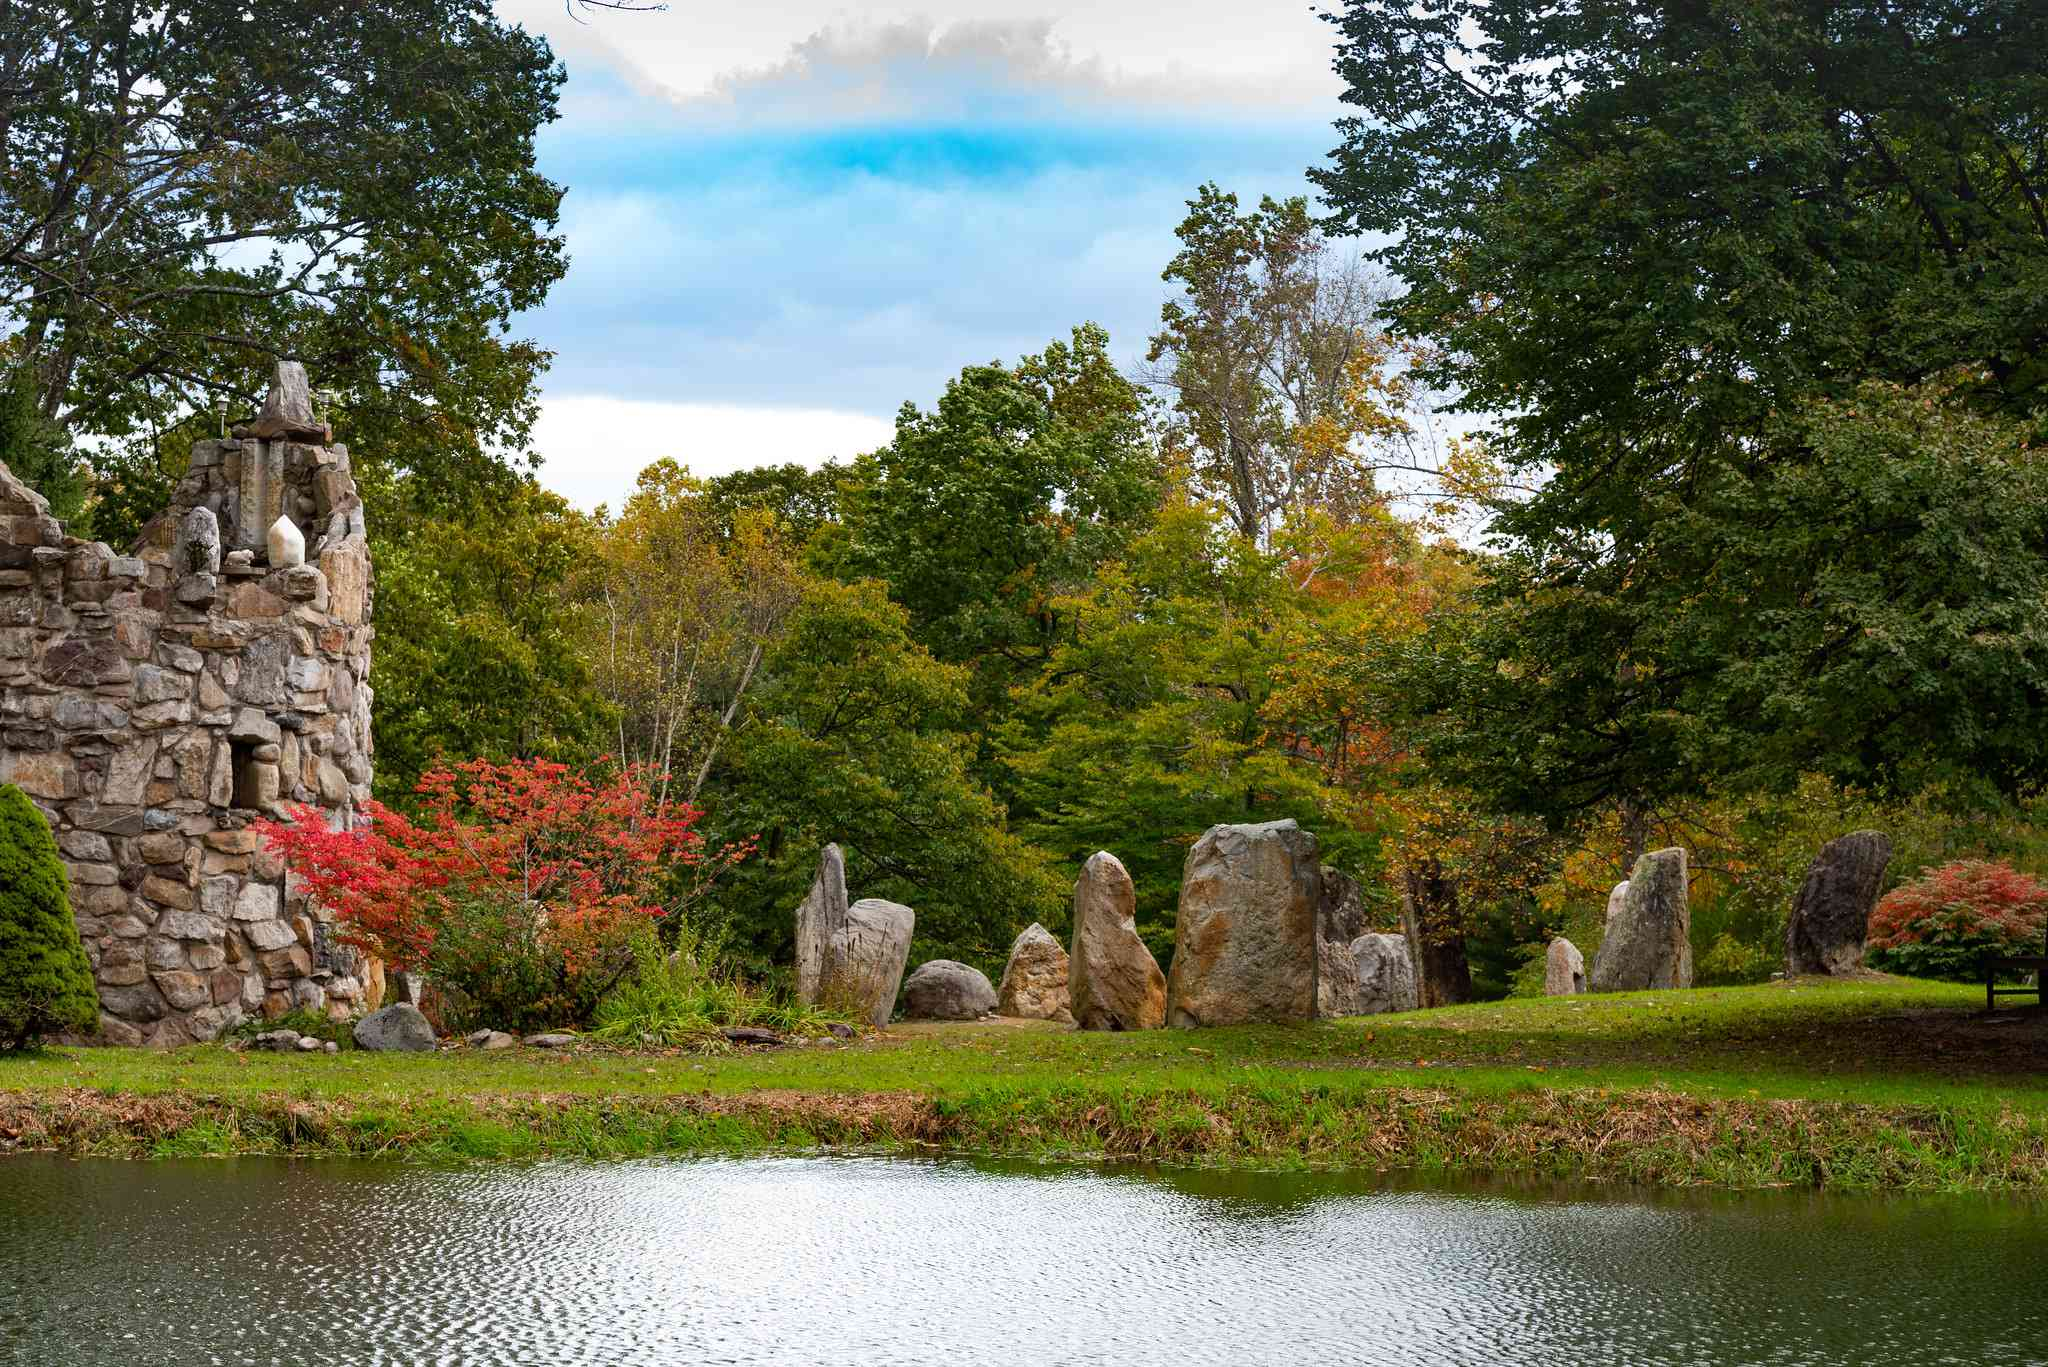 A stone bell tower and circle of stone structures with a pond in the foreground